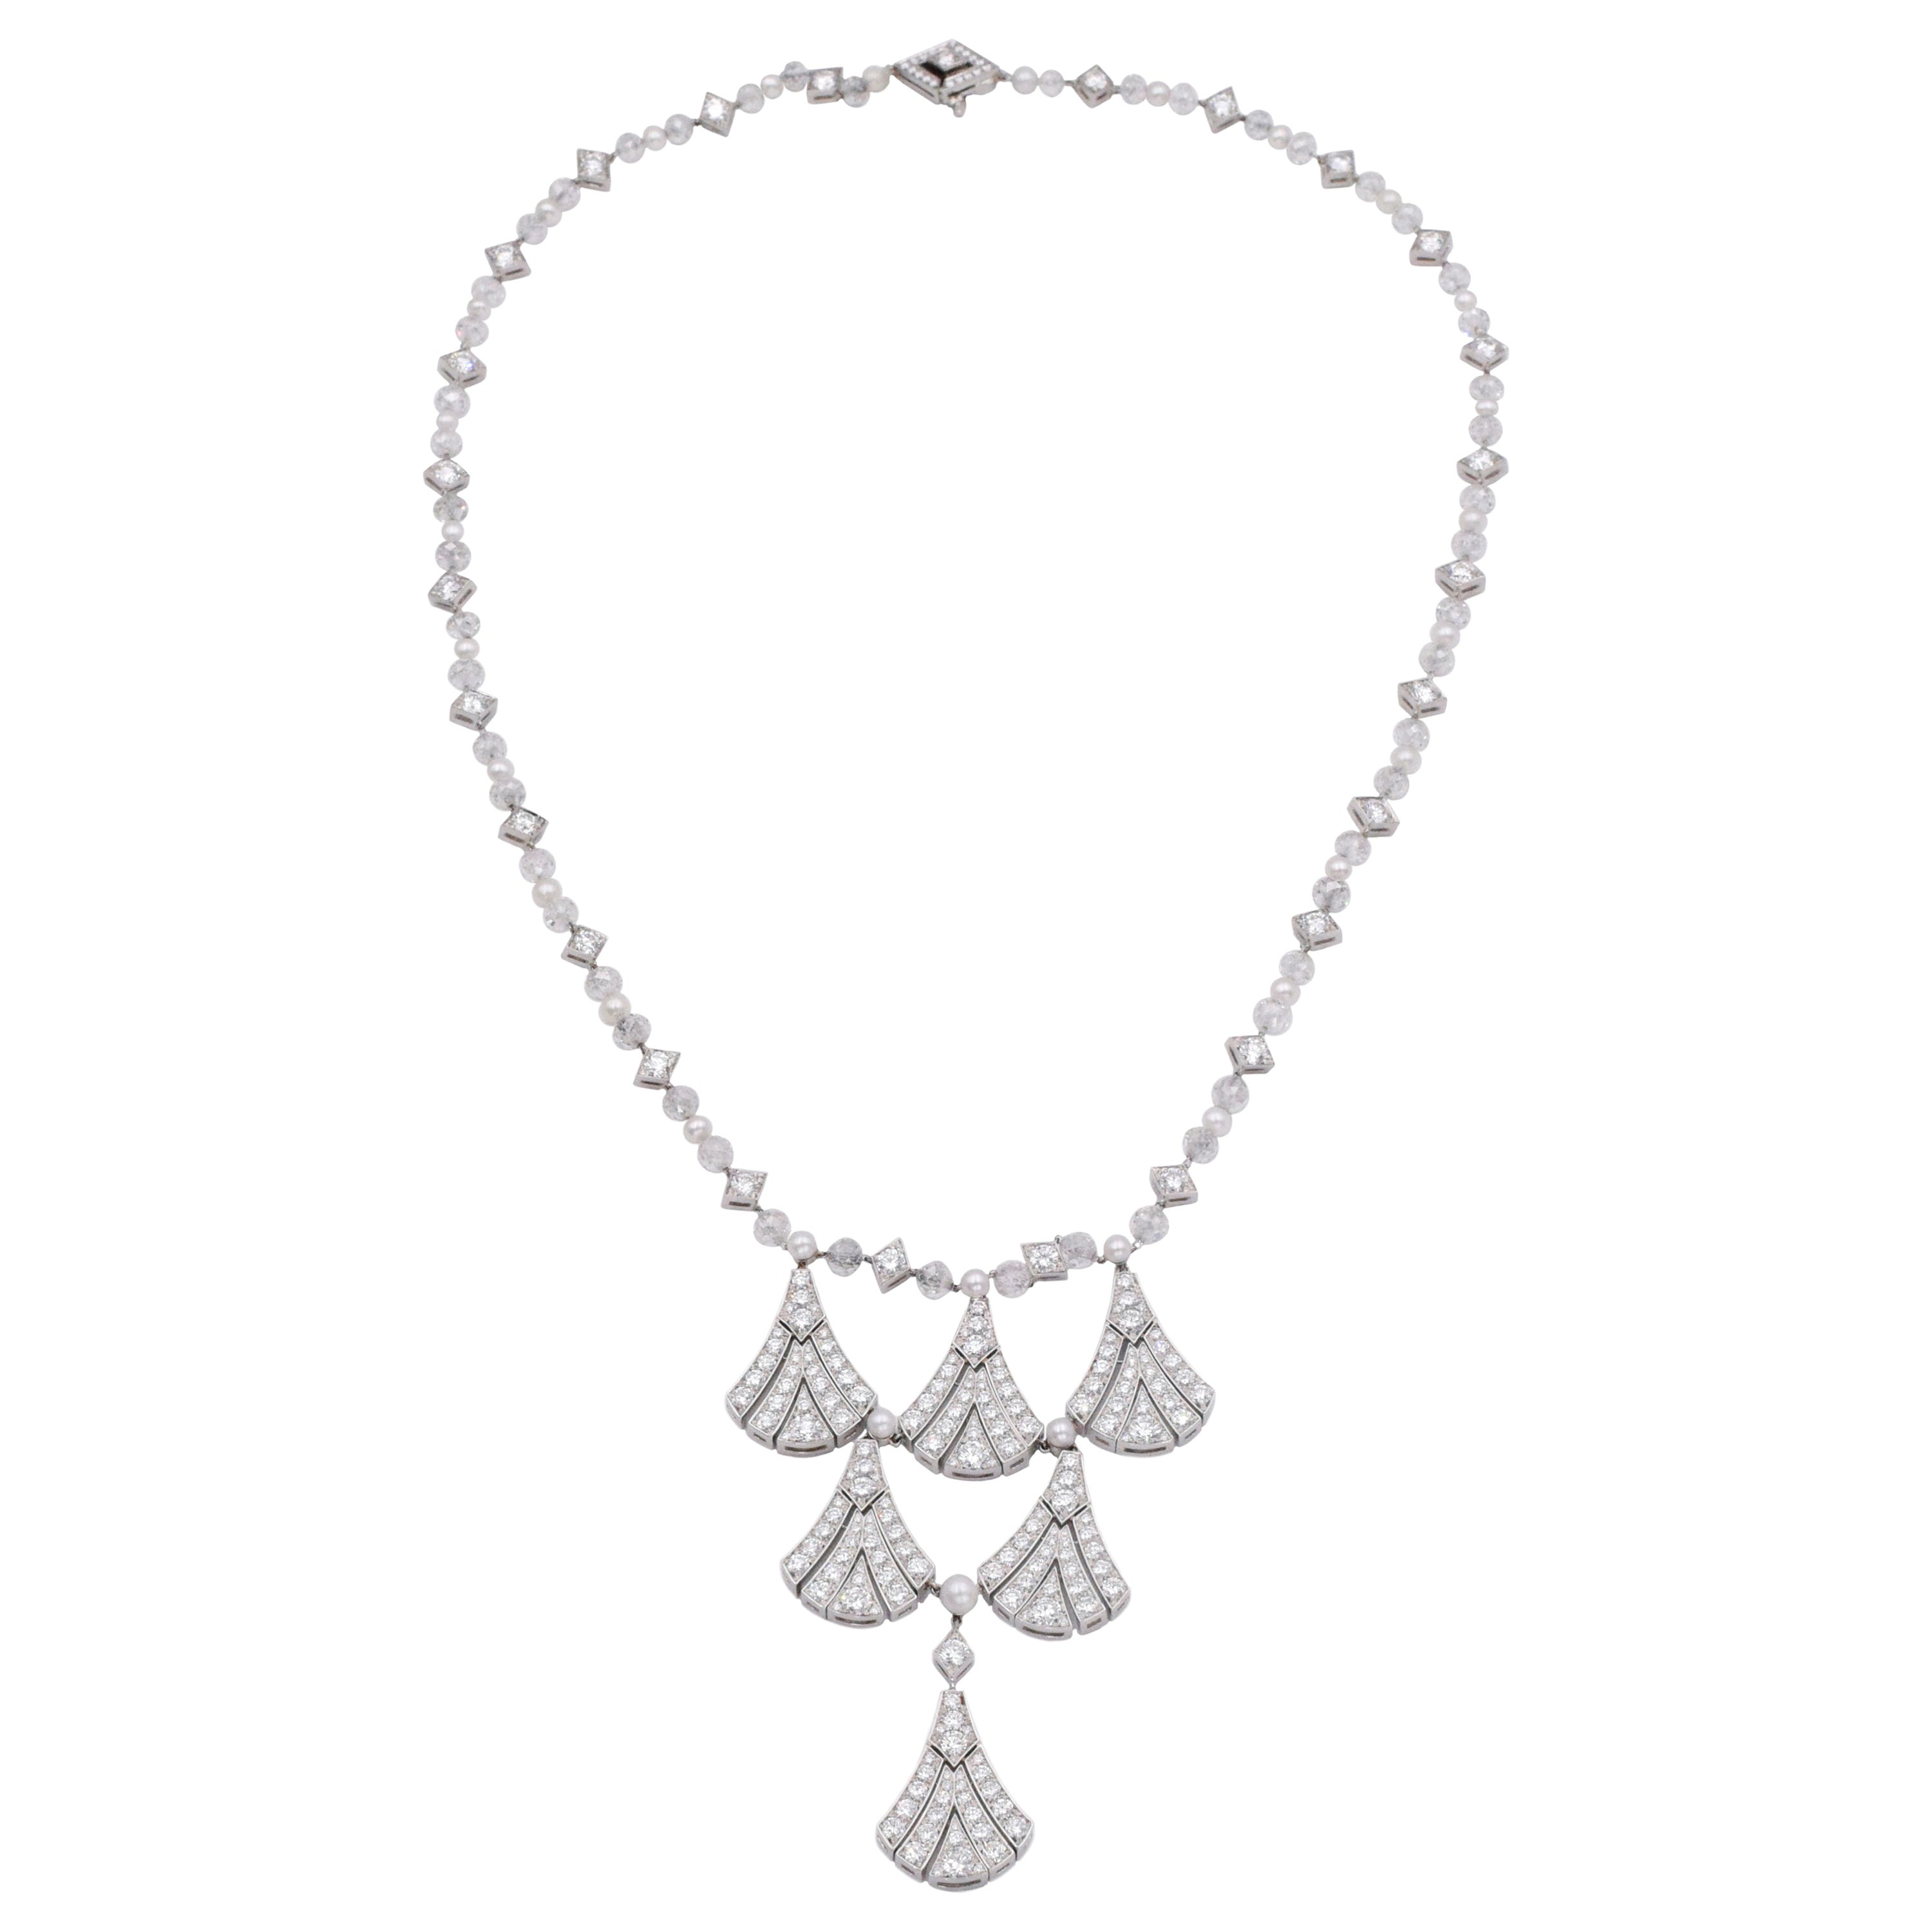 Tiffany & Co. Diamond and Pearl Necklace